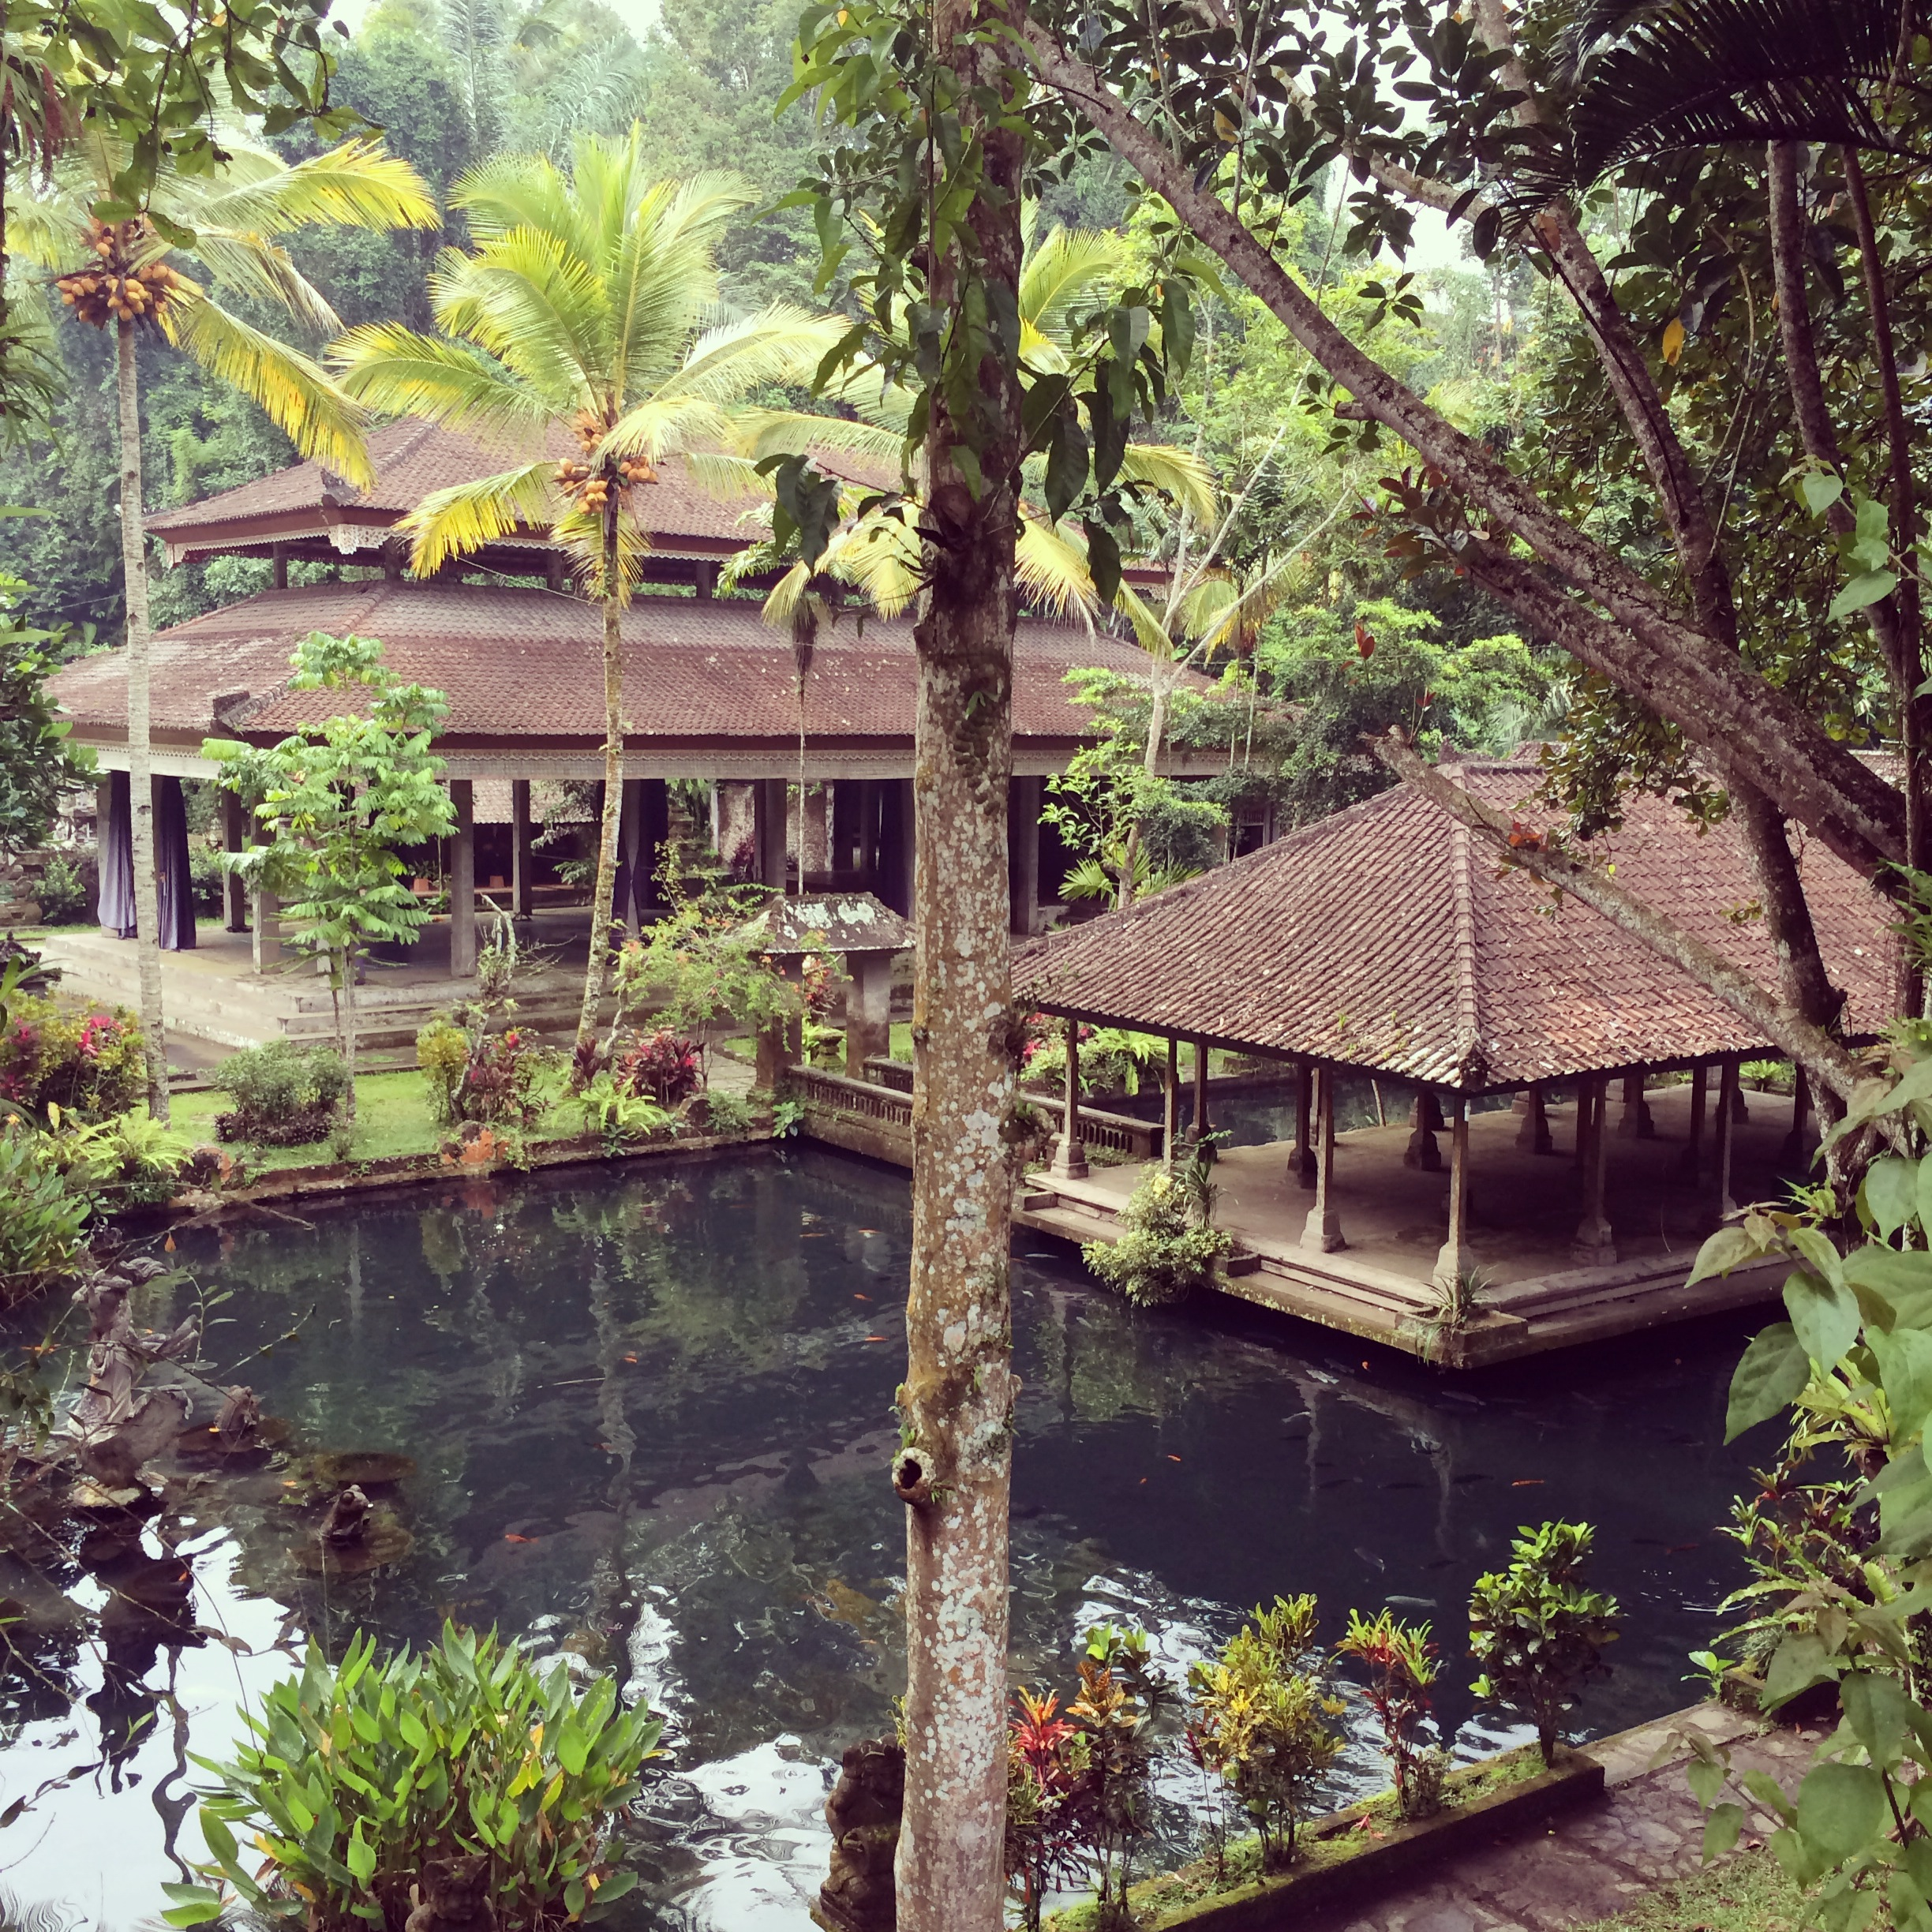 Where to eat, shop, heal and stay in Ubud Bali